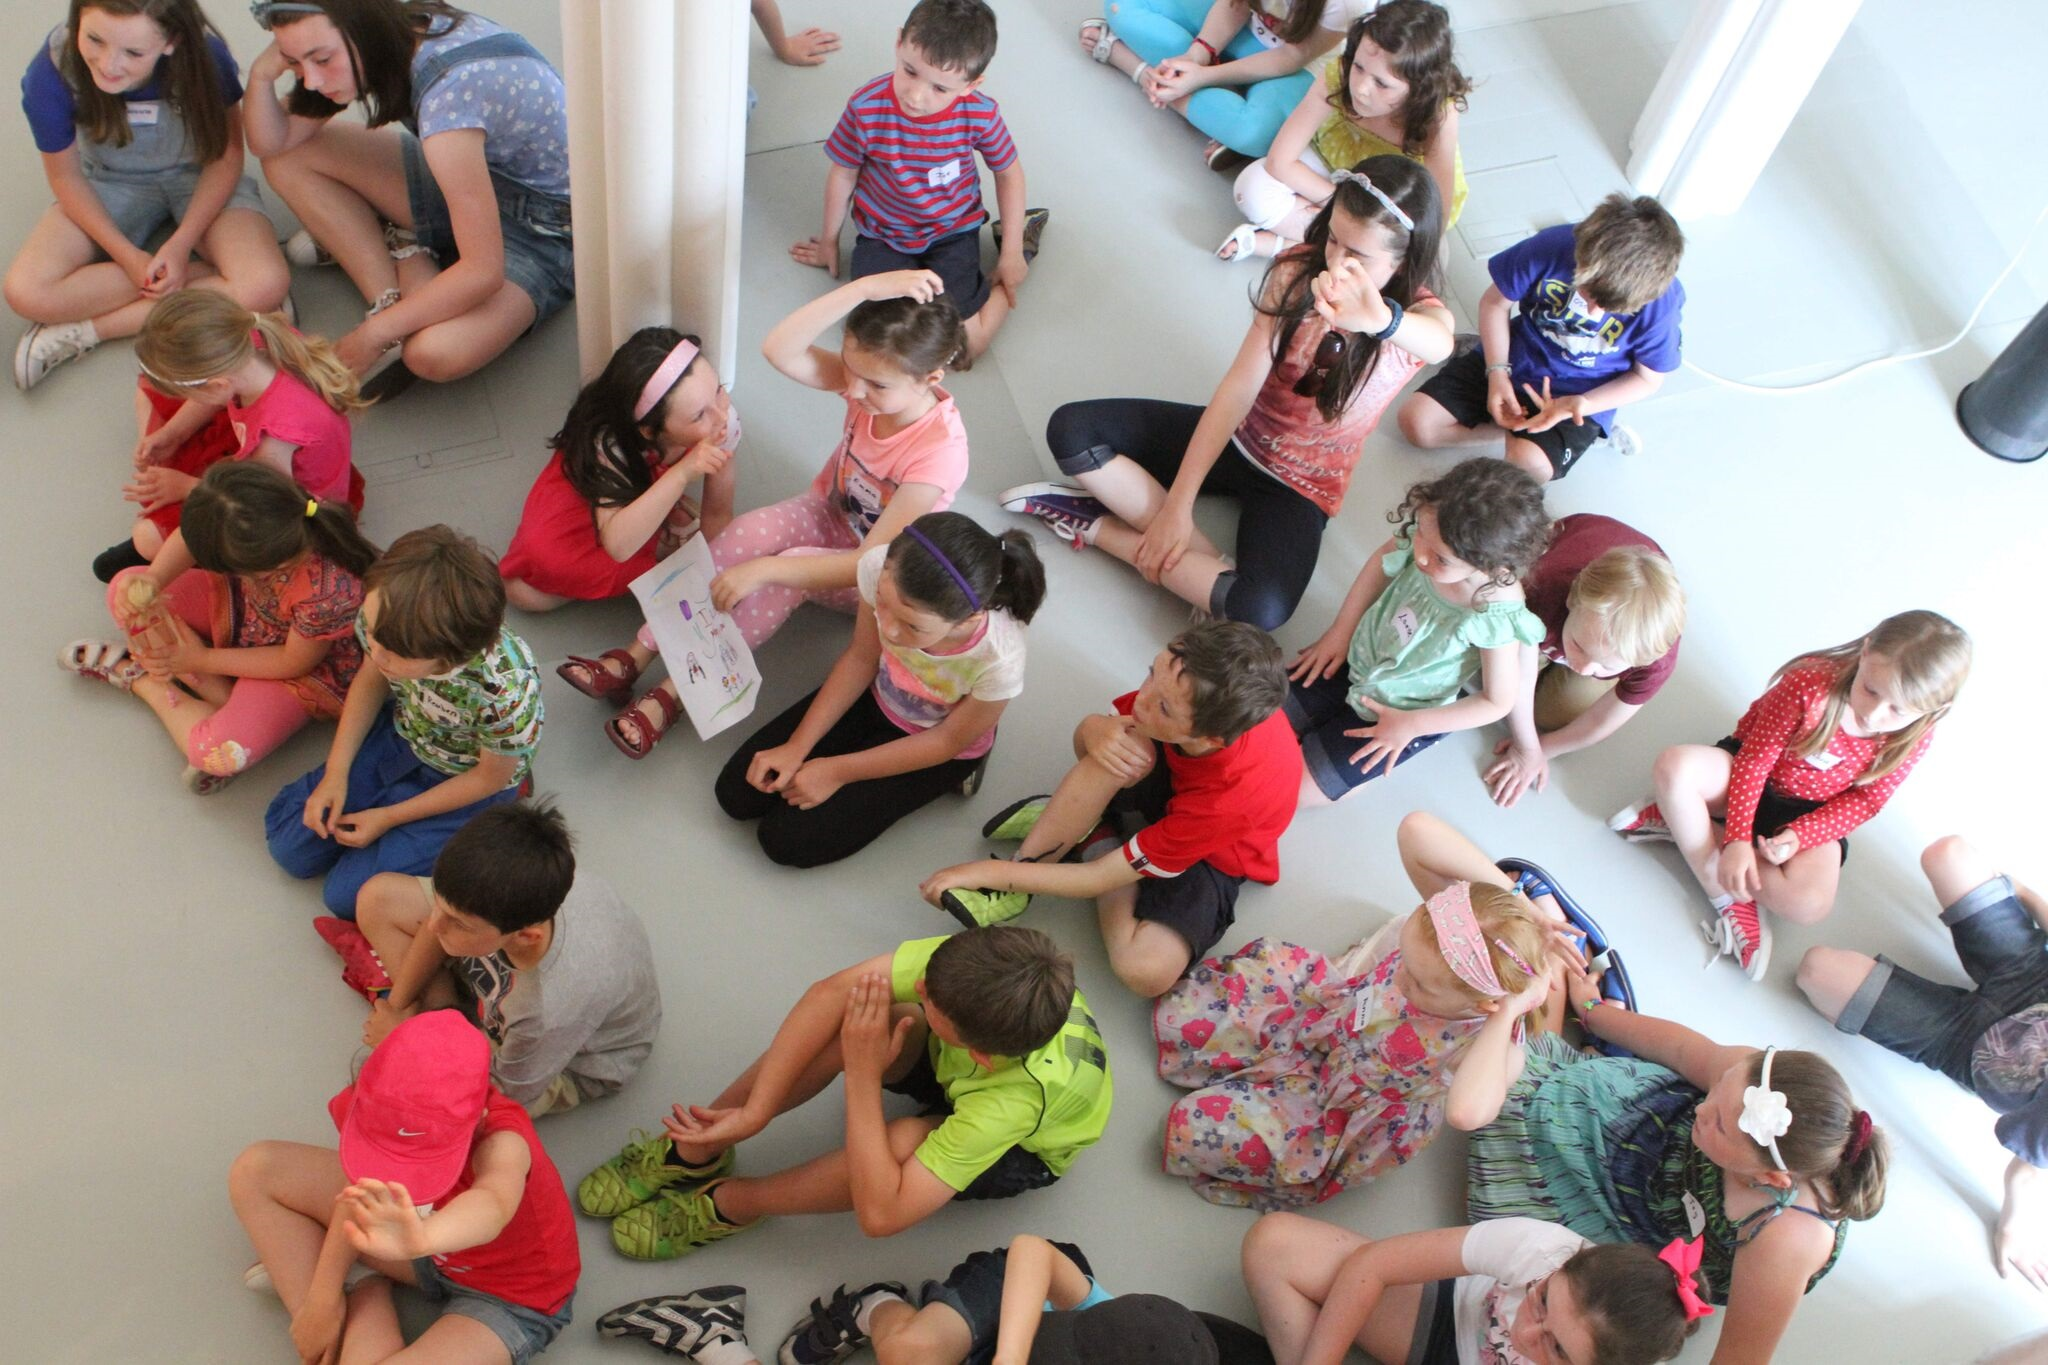 Children's Workshop in motion at the gallery